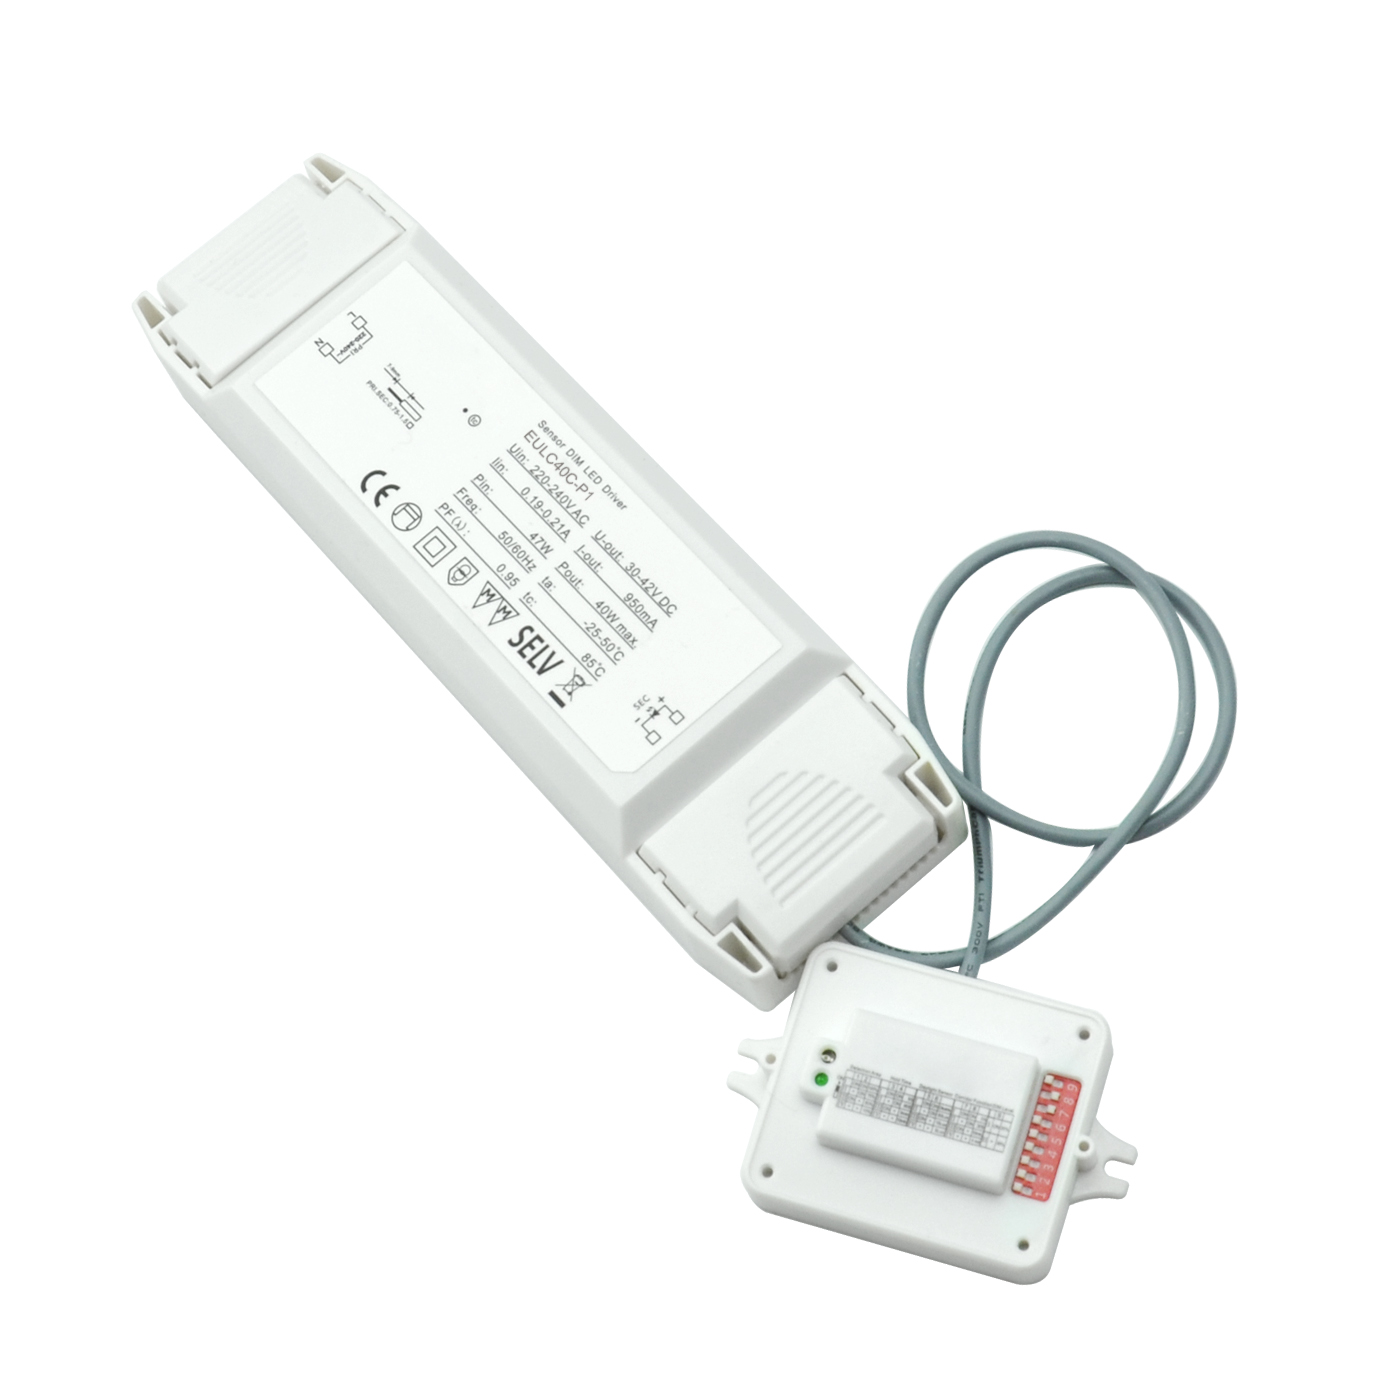 [out of stock]100-277VAC Motion Sensor Dimmable LED Driver